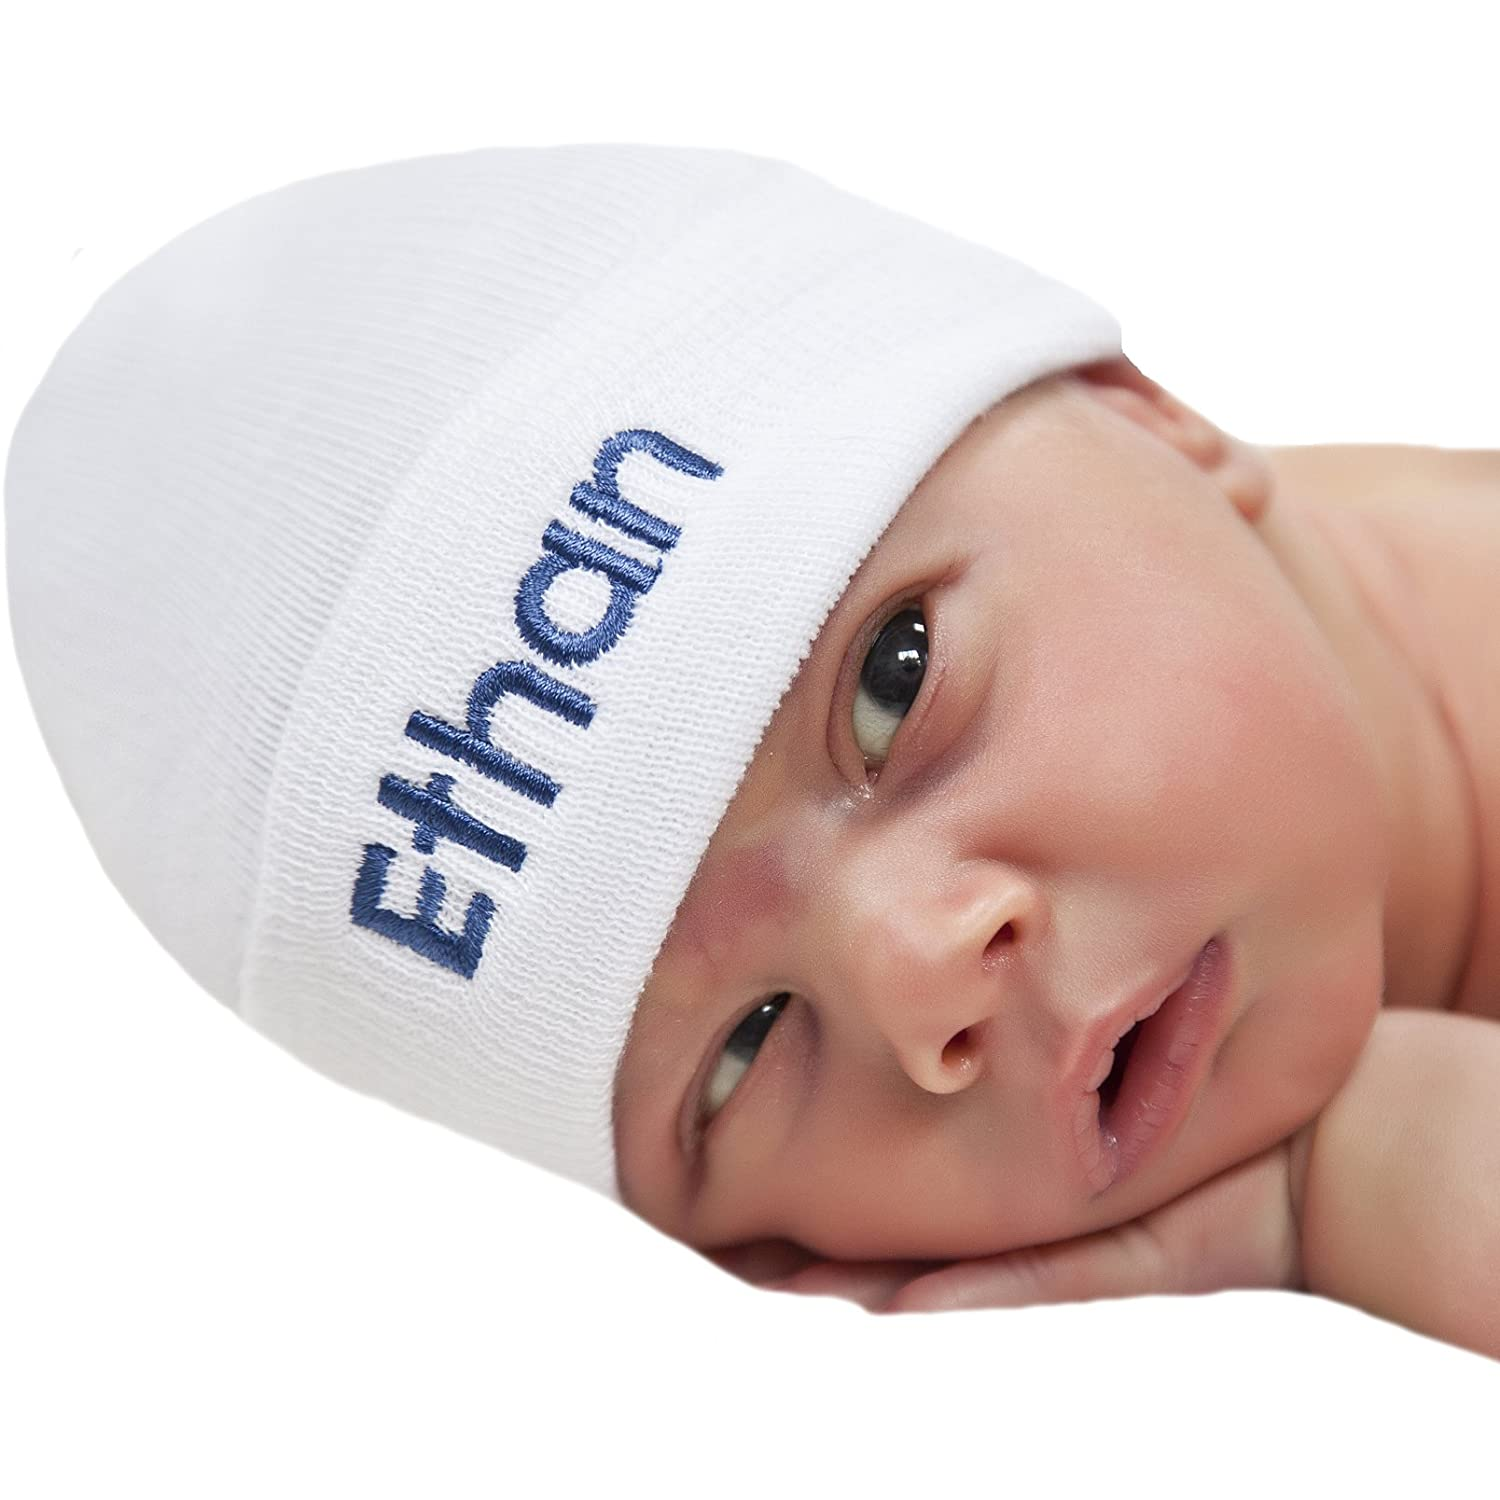 Amazon.com  Melondipity White Personalized Newborn BOY hospital baby hat   Clothing 94563a46d8a